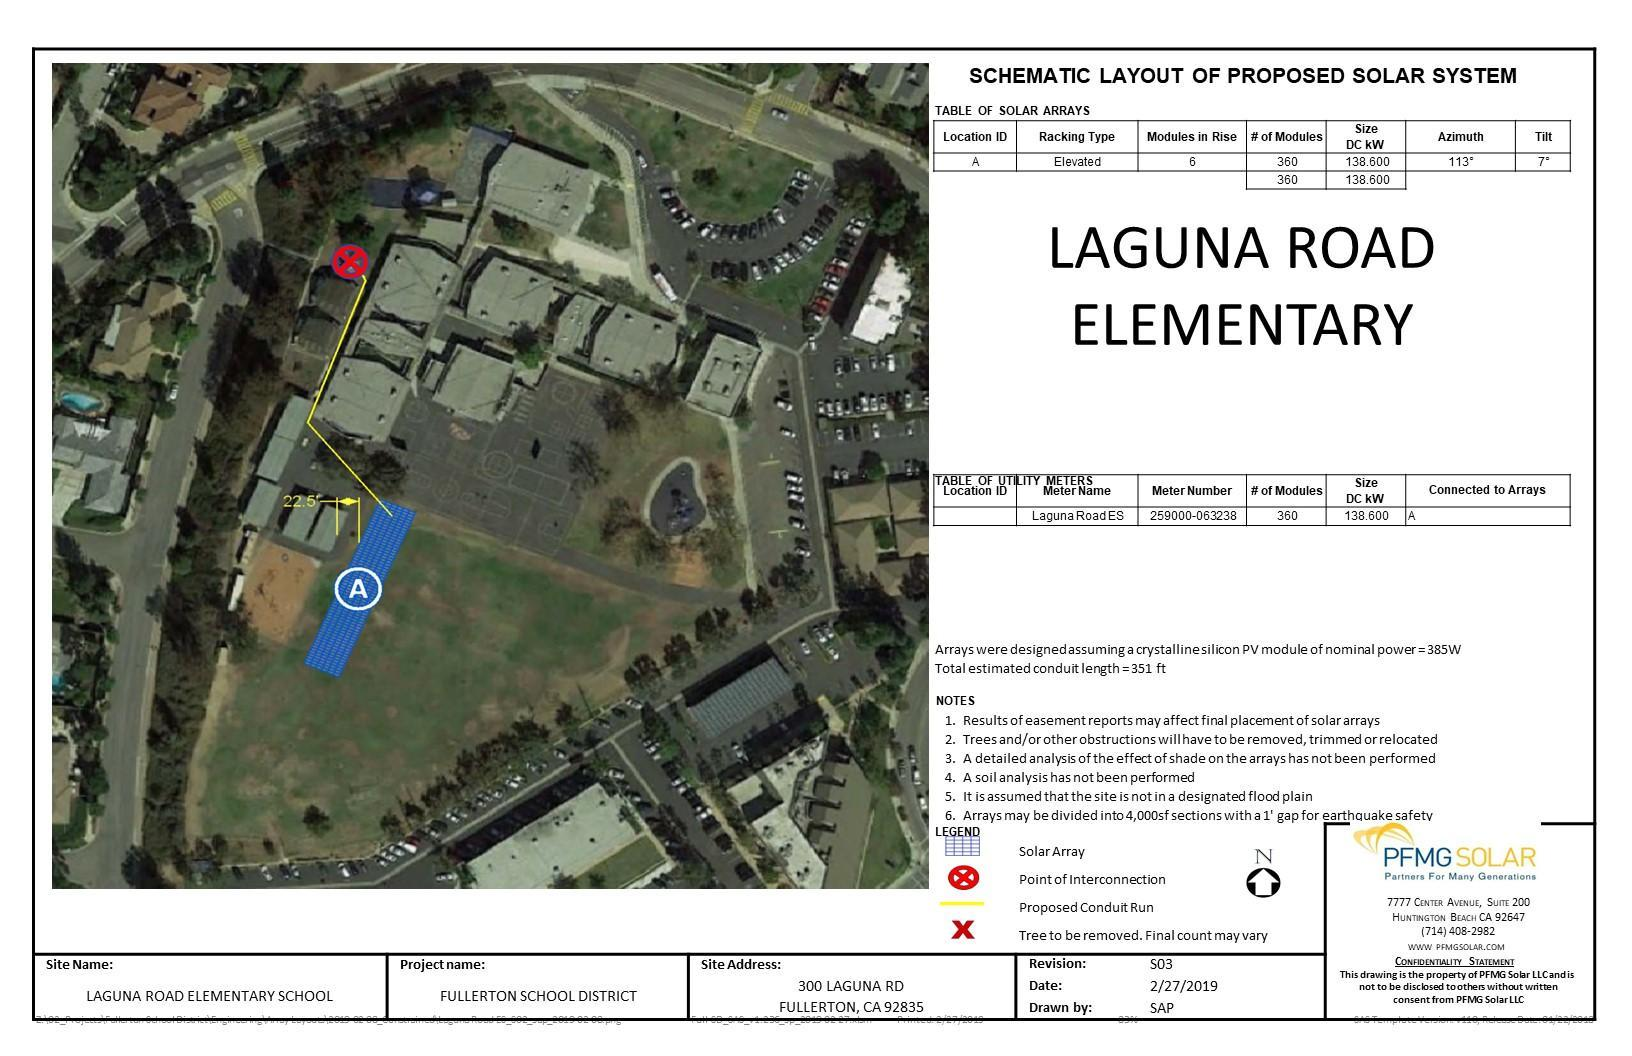 Laguna Road Elementary Schematic Layout of Proposed Solar System